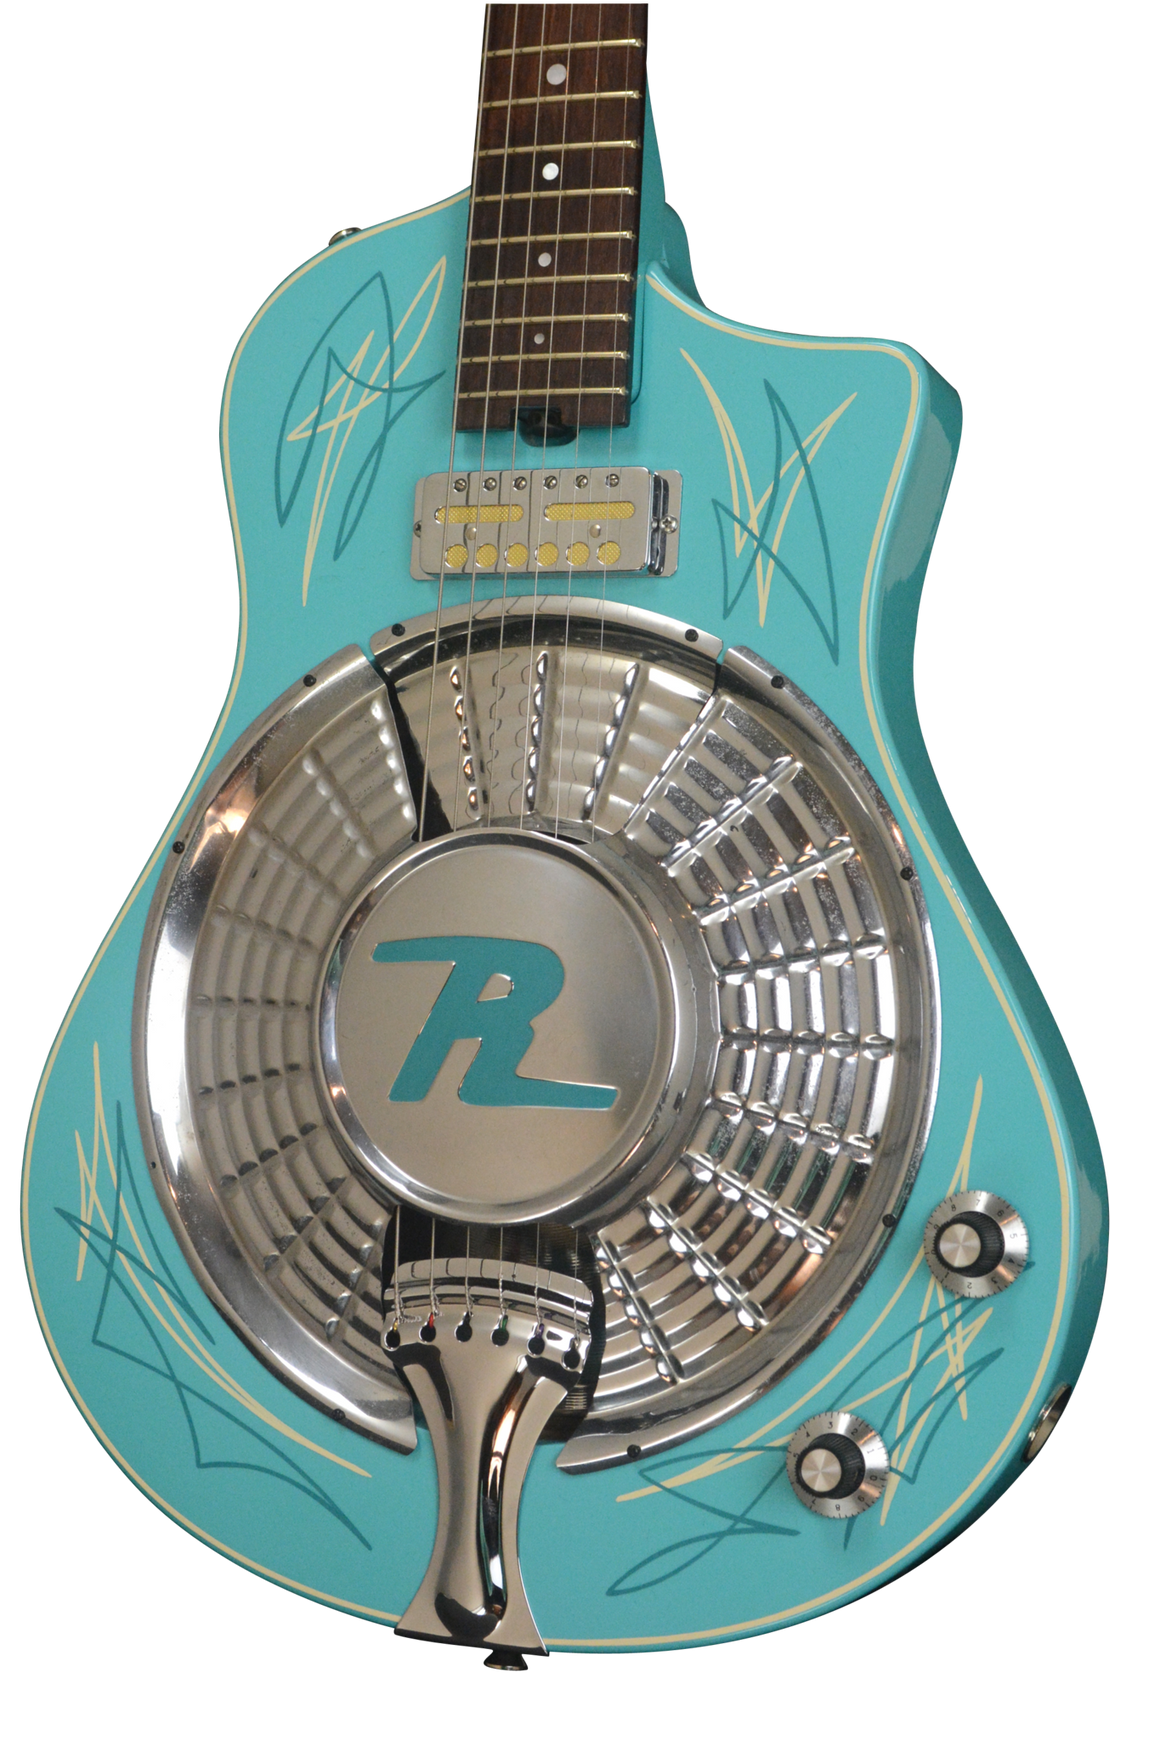 SOLD 2017 Resosonic Rambler, Baby Blue with Full Pinstriping, #971